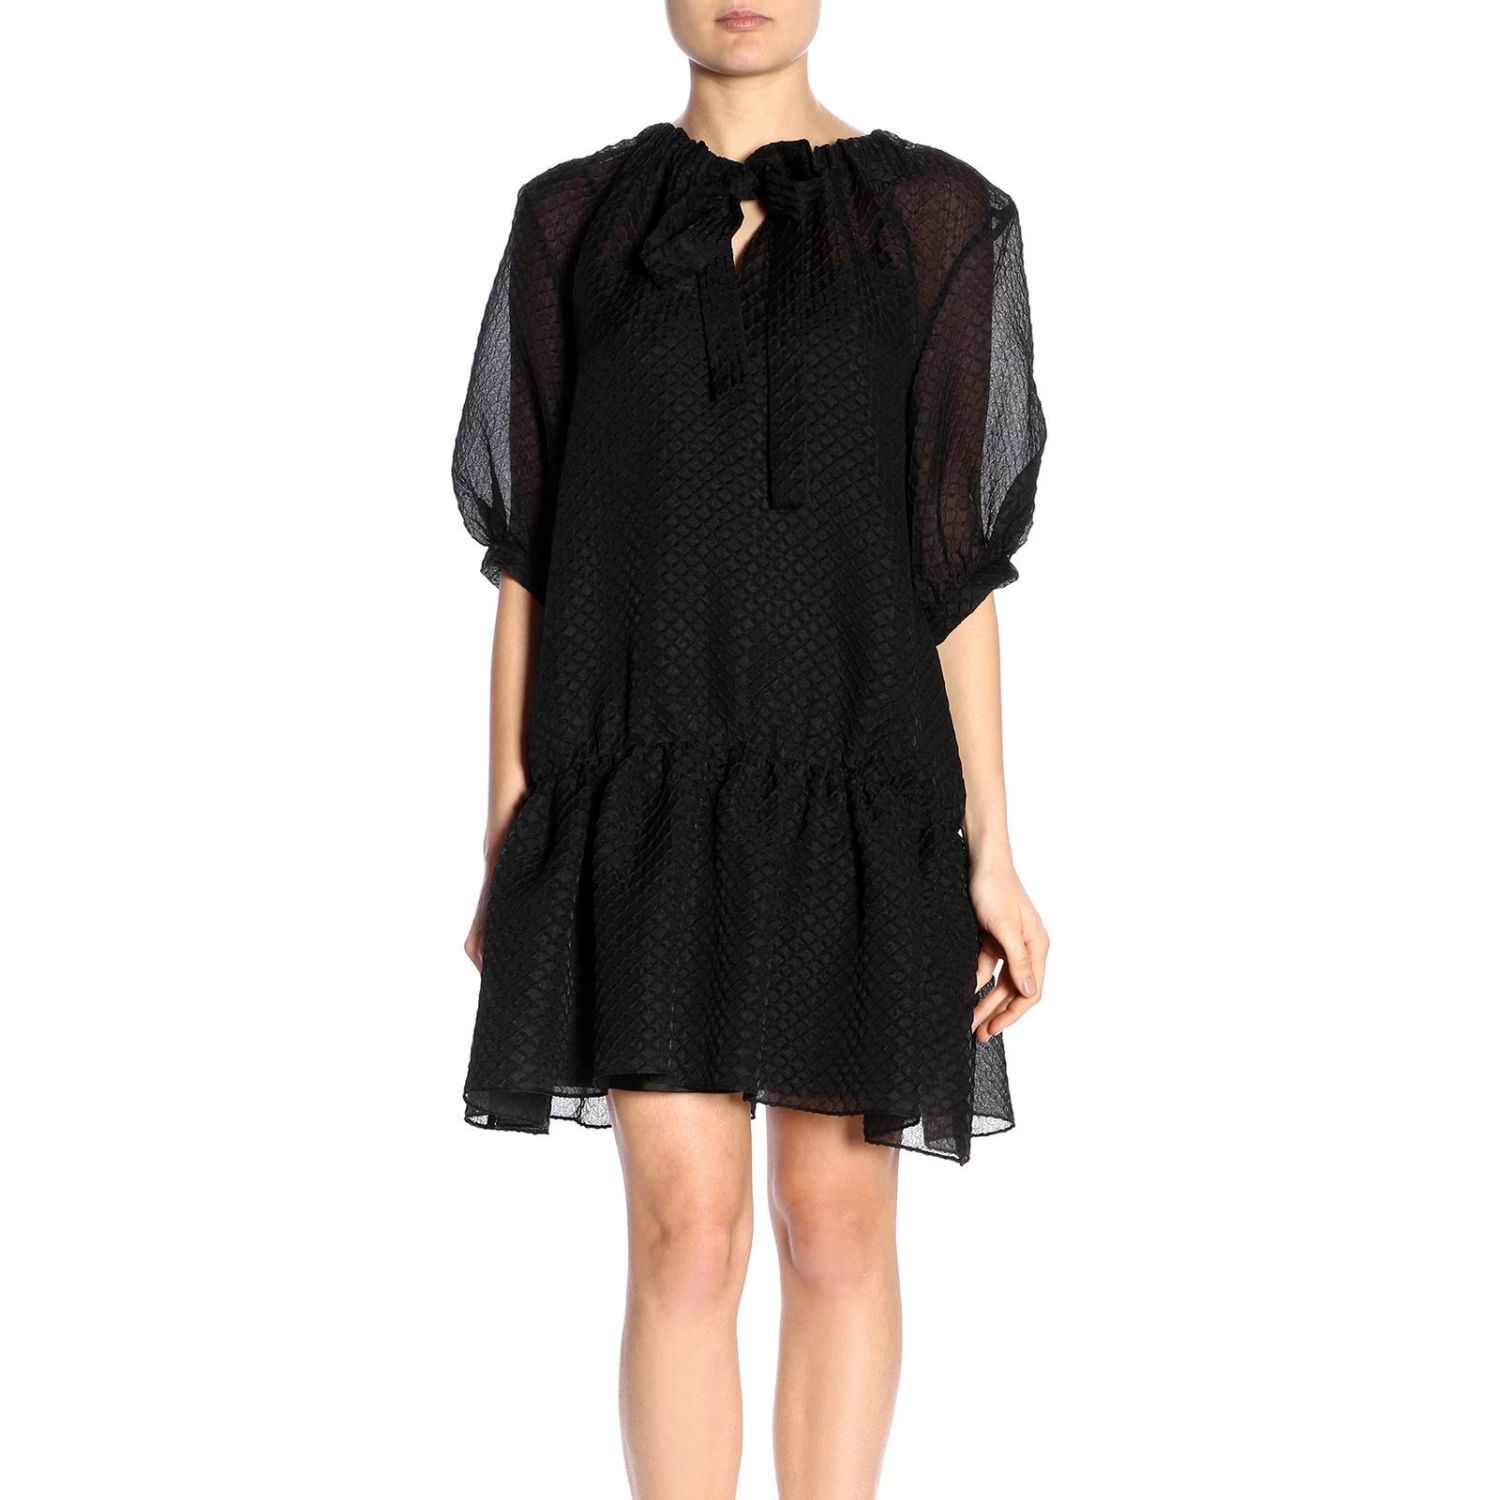 Dress women Boutique Moschino black 1